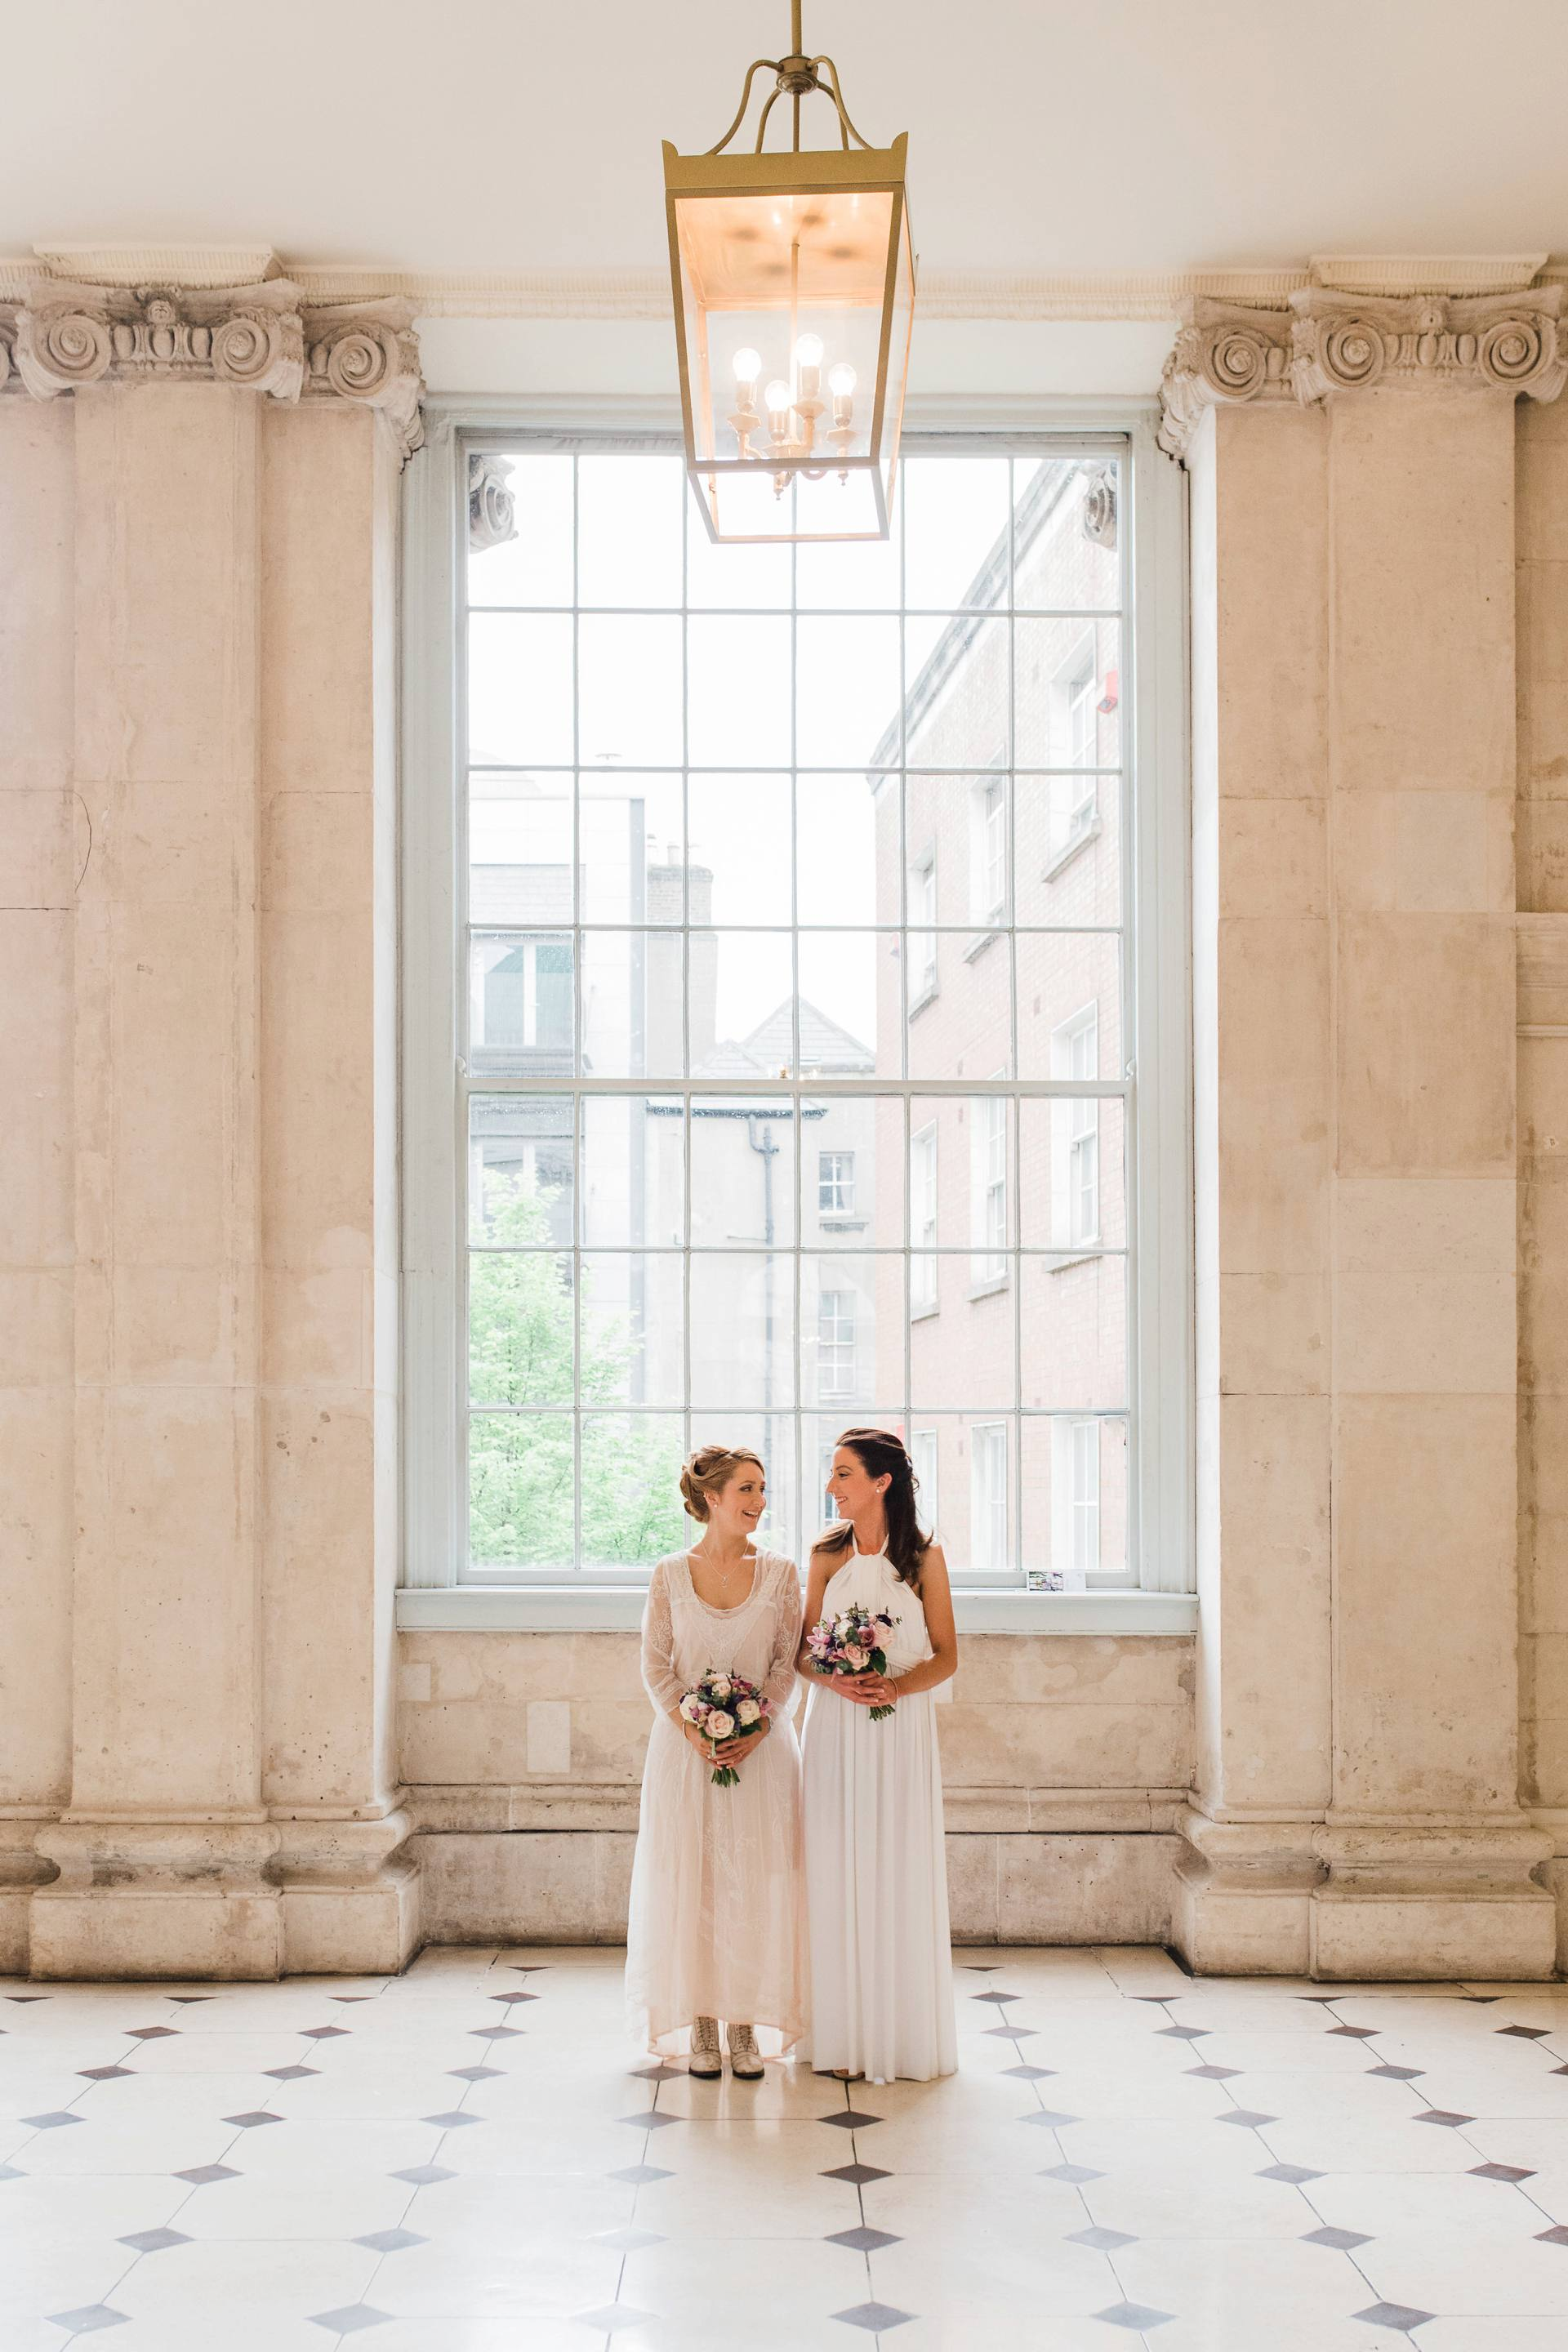 Two brides looking at each other in Dublin City Hall